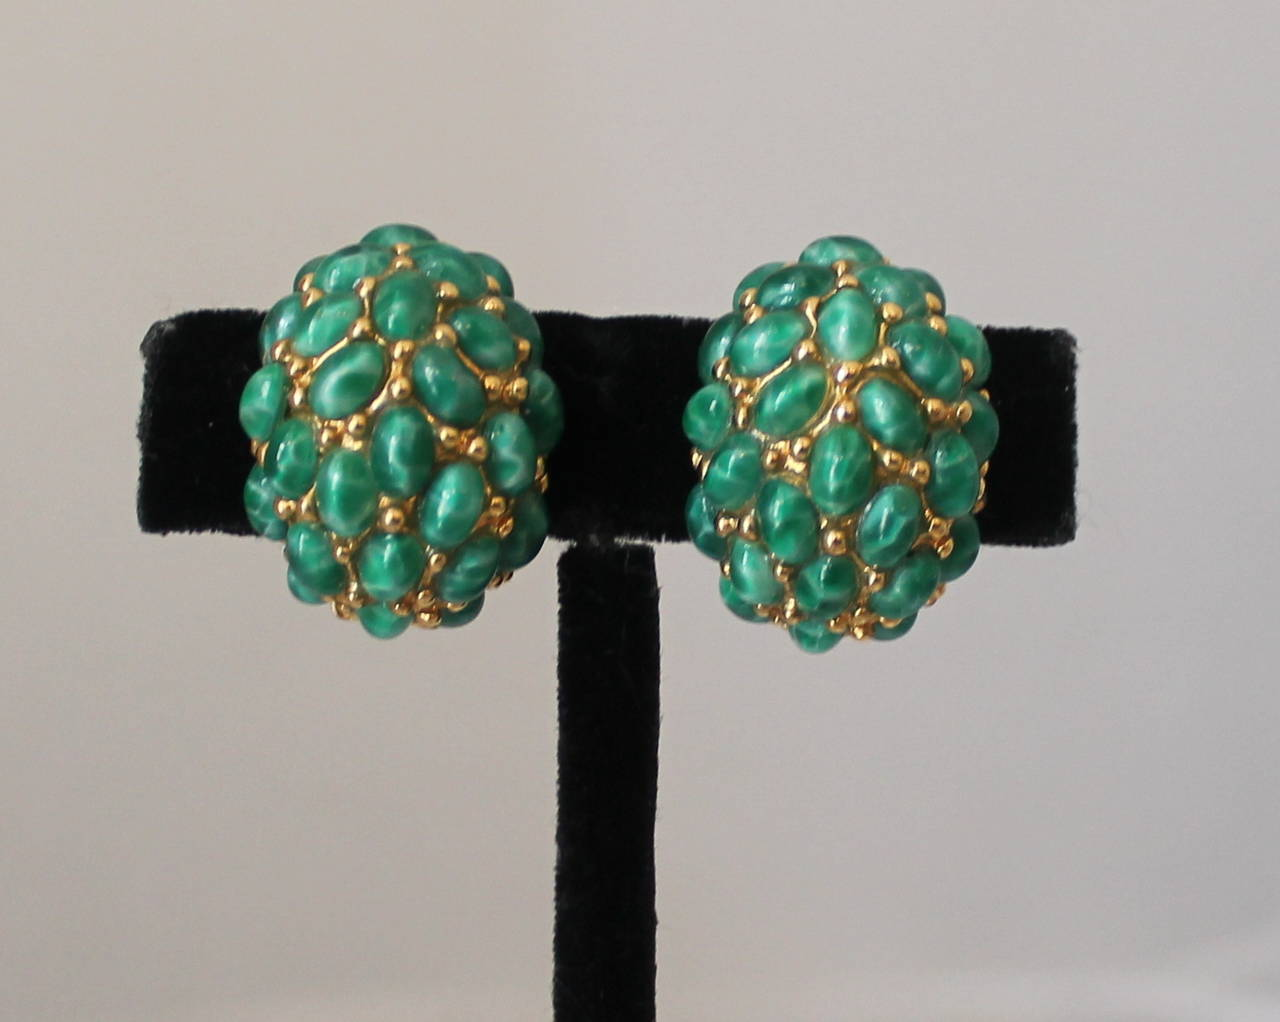 Kenneth Jay Lane 1990's Teal Stone Covered Clip-Ons 2